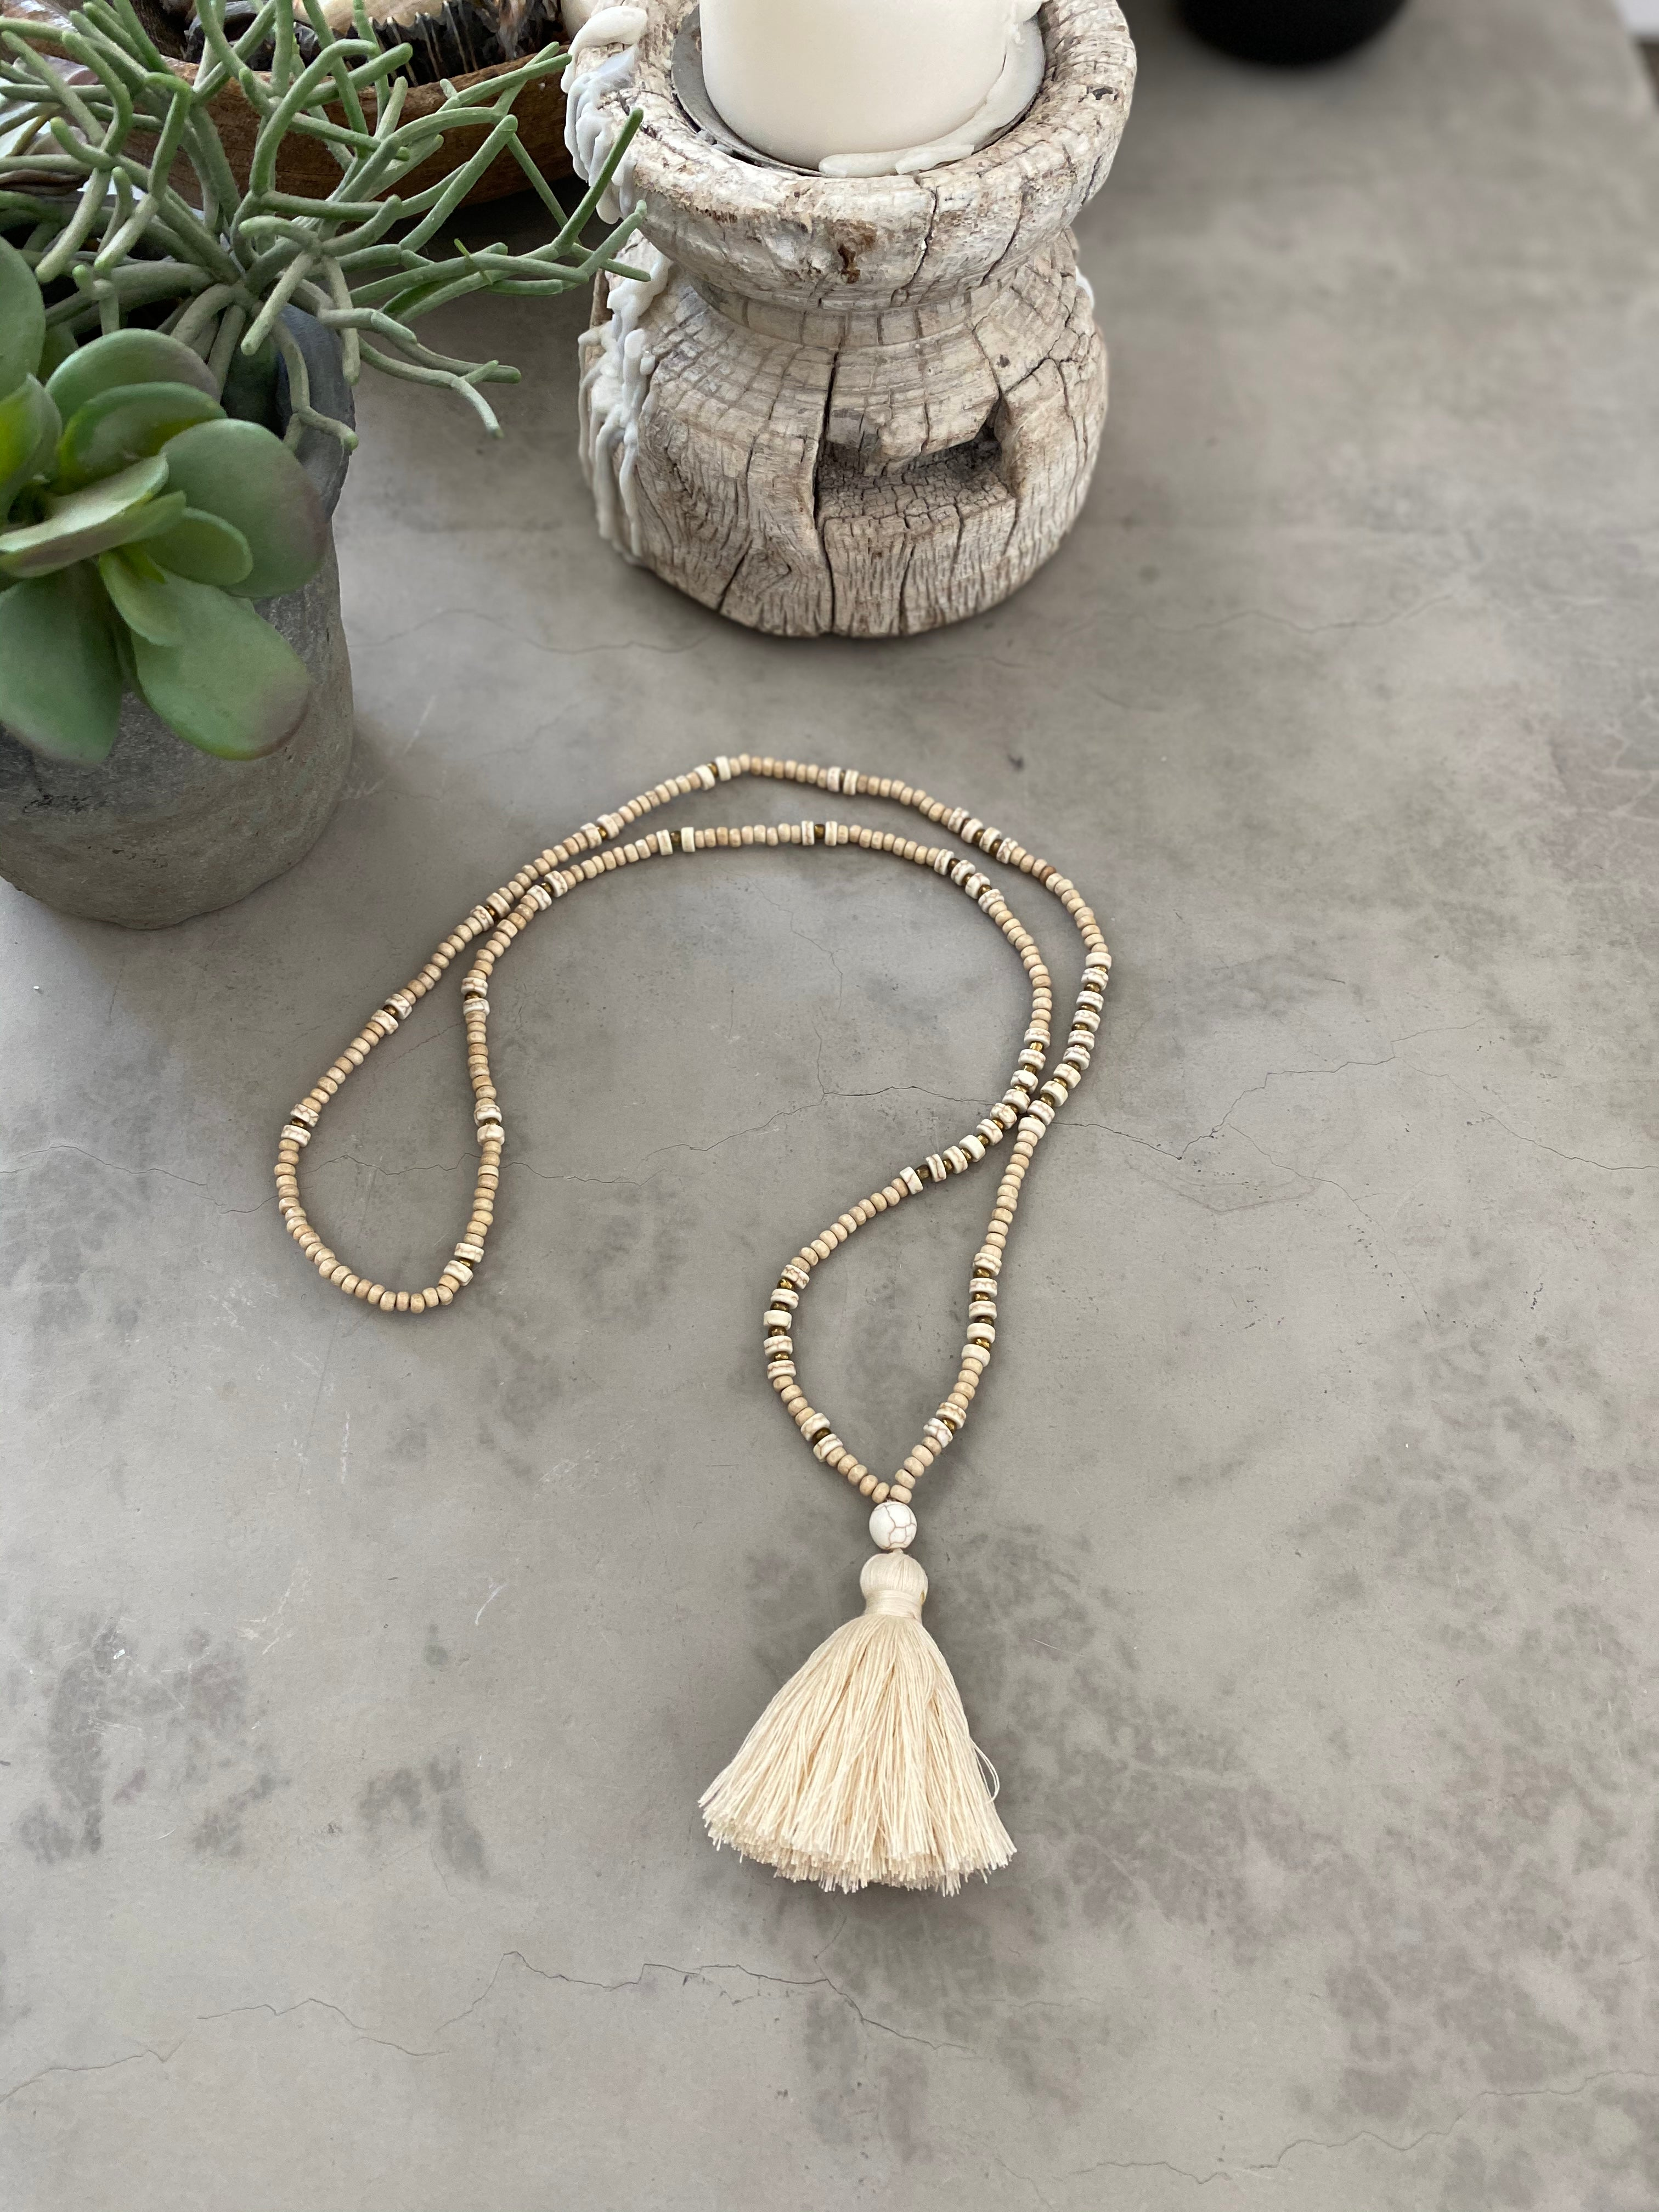 Light Wooden Tassel - Cream